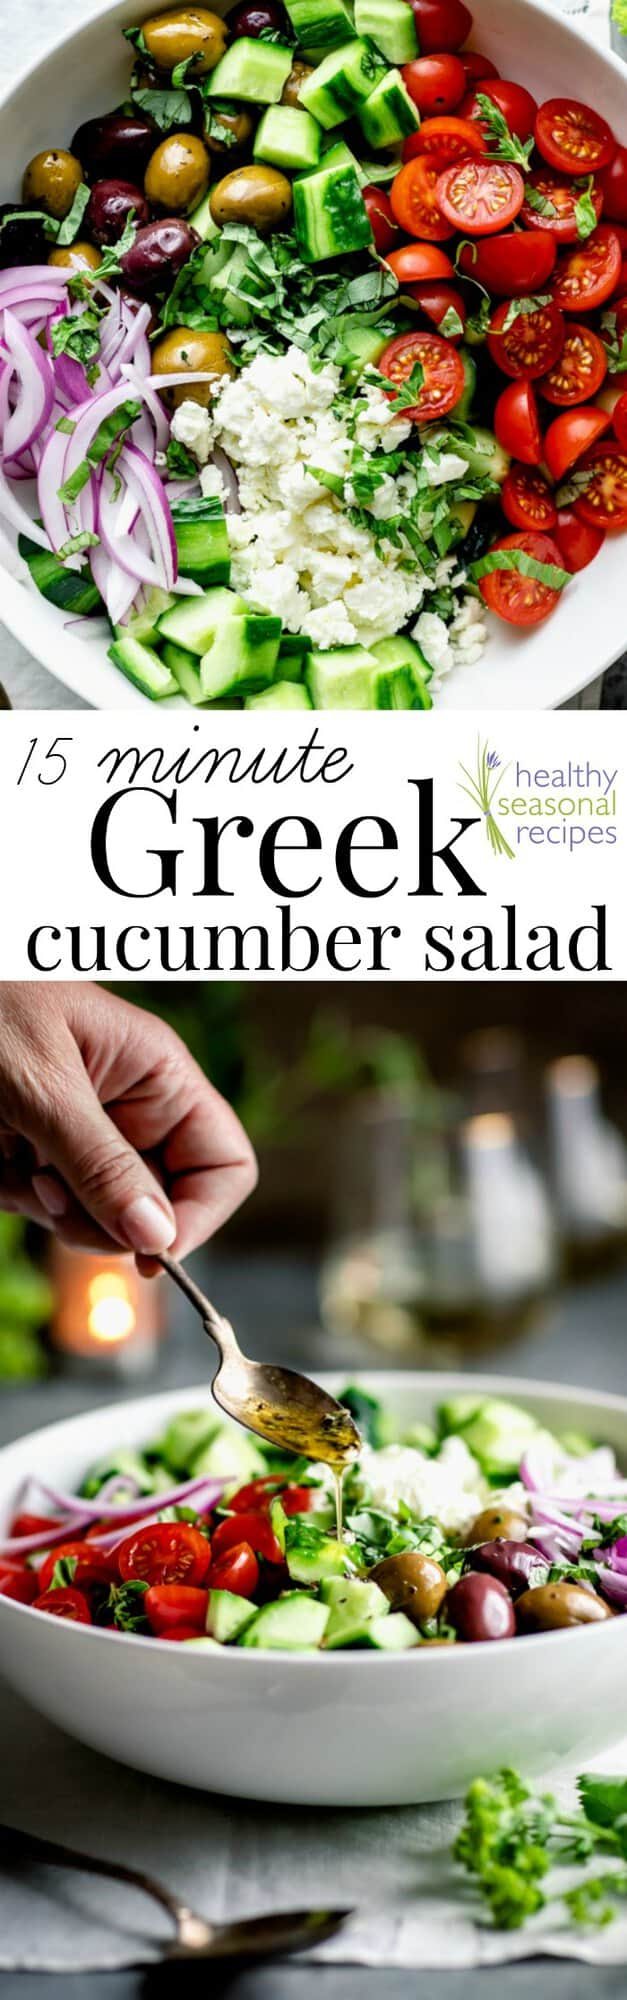 What's not to adore about this easy-as-can-be 15 minute Greek cucumber salad with feta, olives and cherry tomatoes? It's the absolute best! Naturally gluten-free. #healthy #greek #cucumber #salad #glutenfree #lowcarb